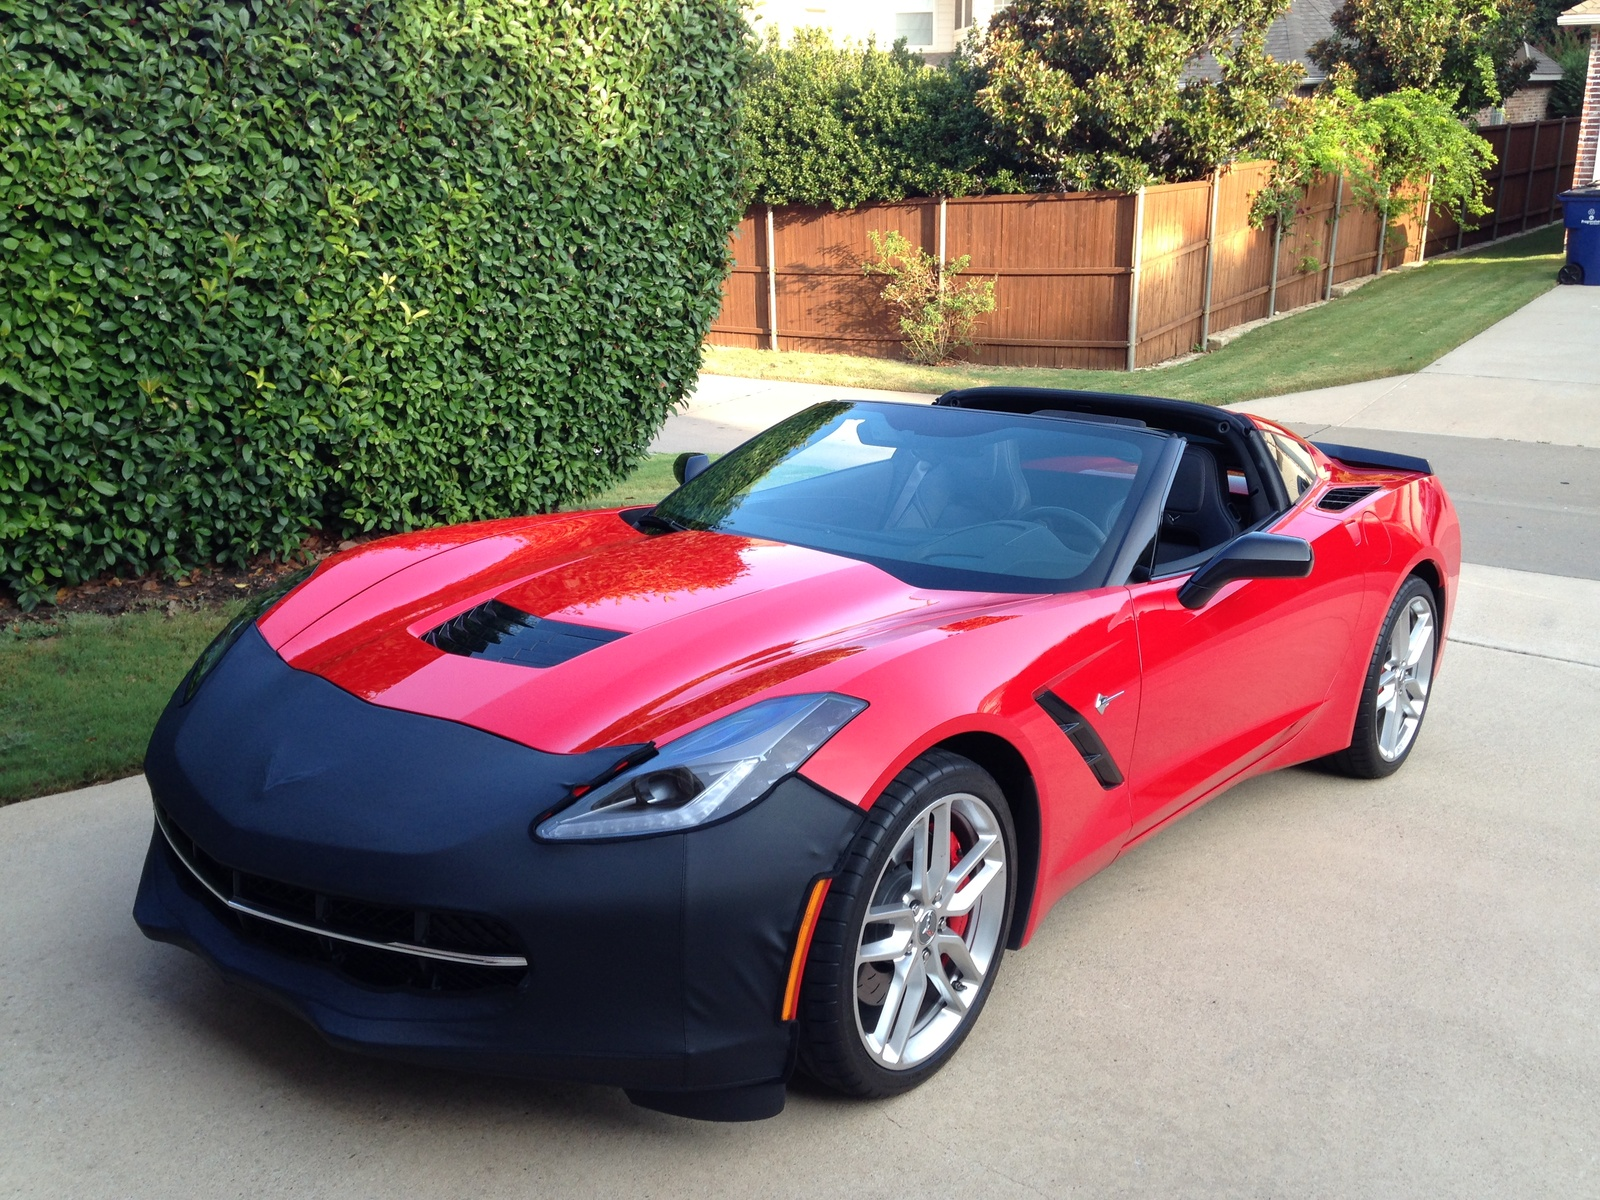 2014 Chevrolet Corvette Z51 3LT picture